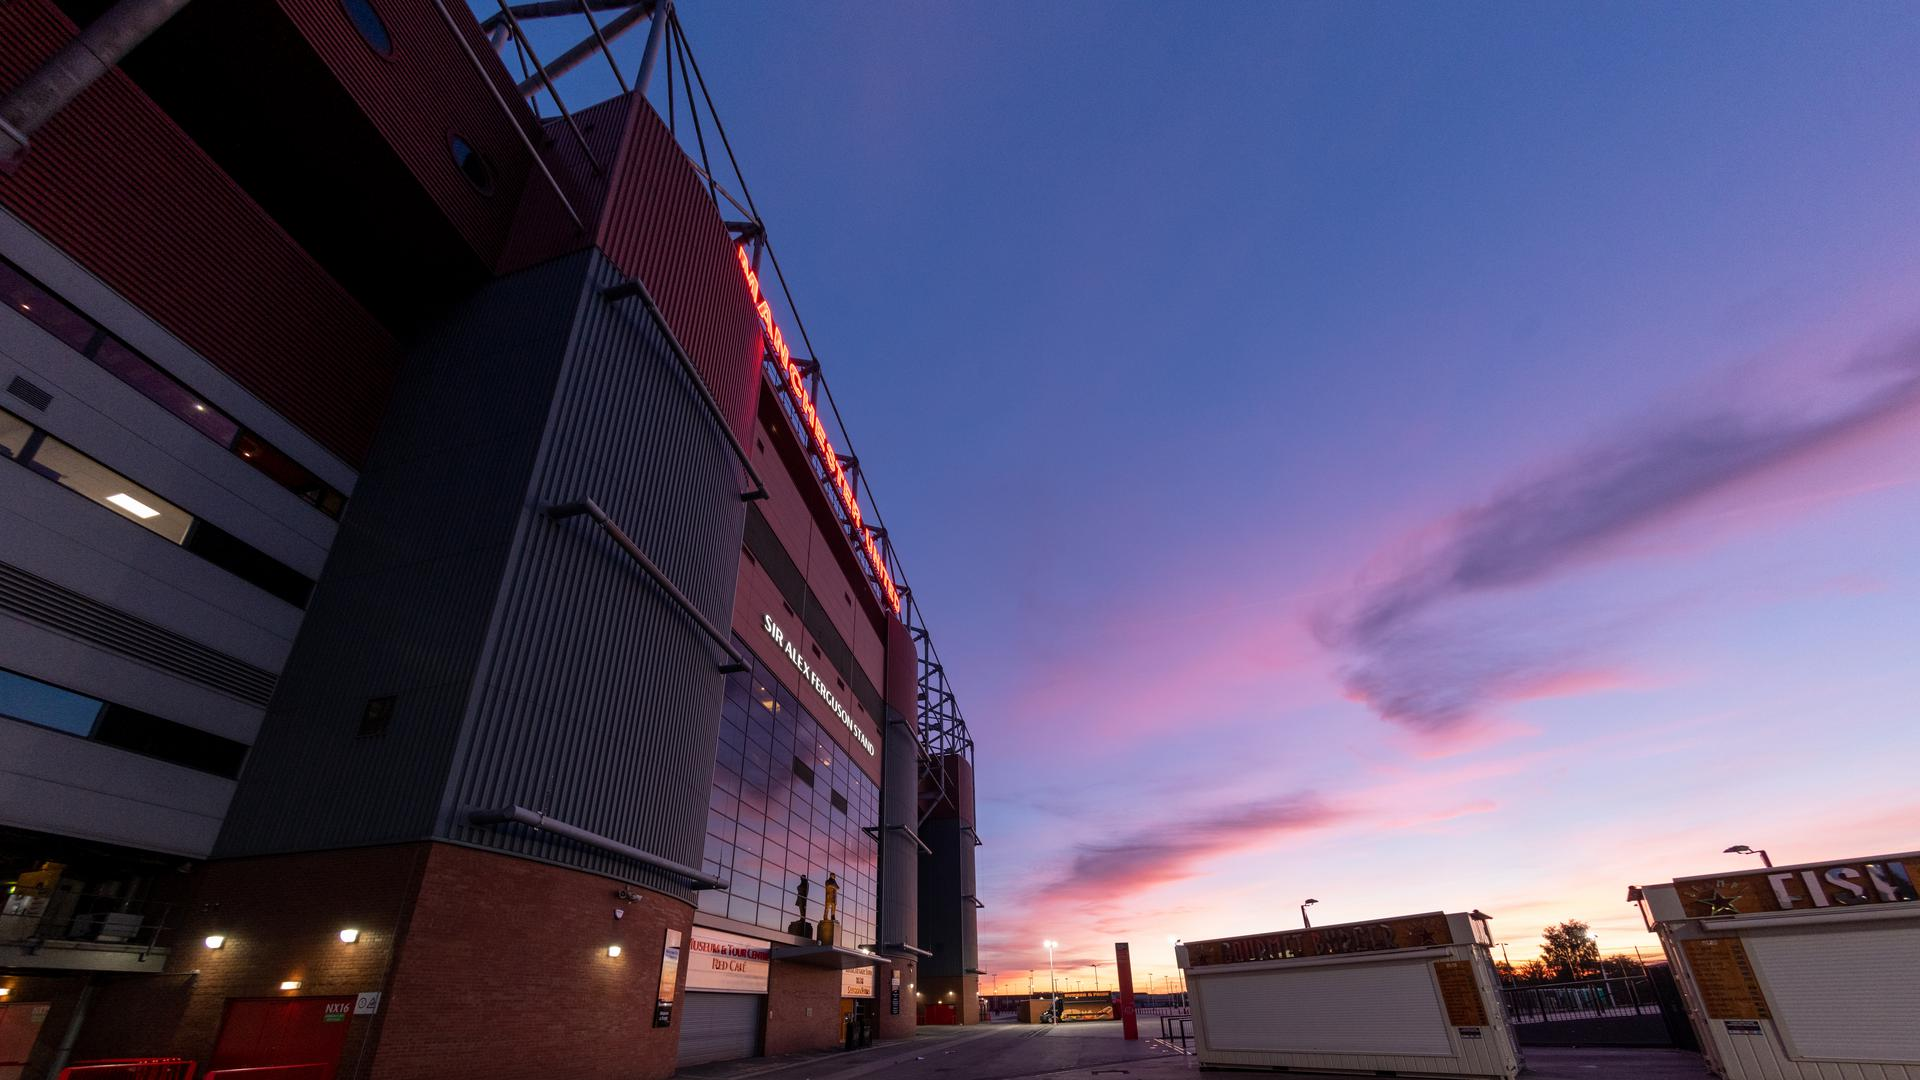 Old Trafford's Sir Alex Ferguson Stand as viewed in the early evening..